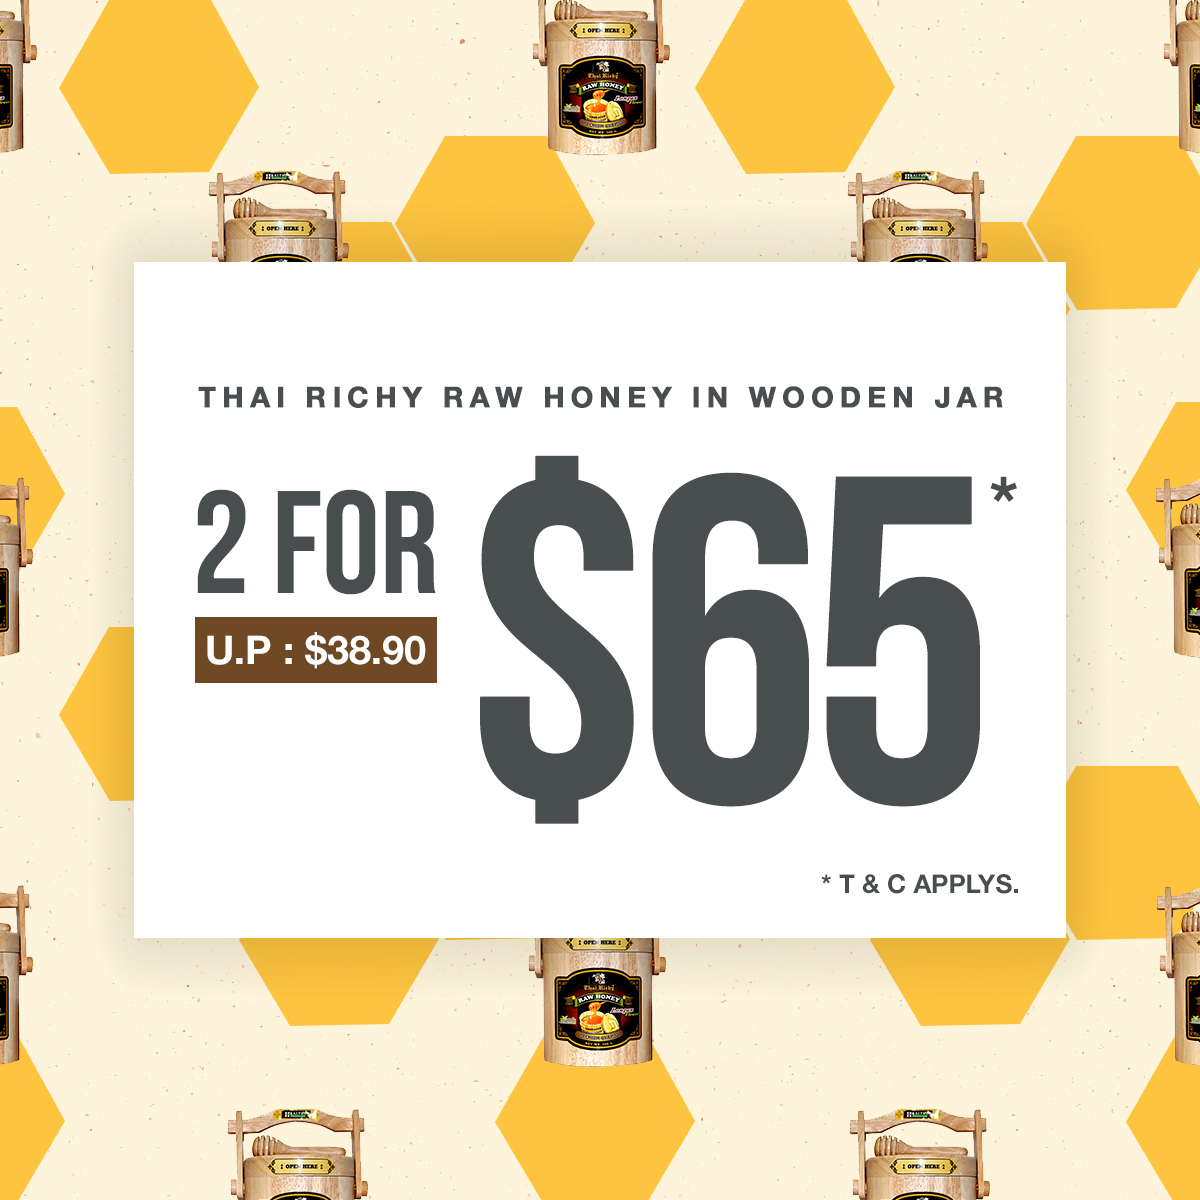 Thai Richy Raw Honey 3 Days Special